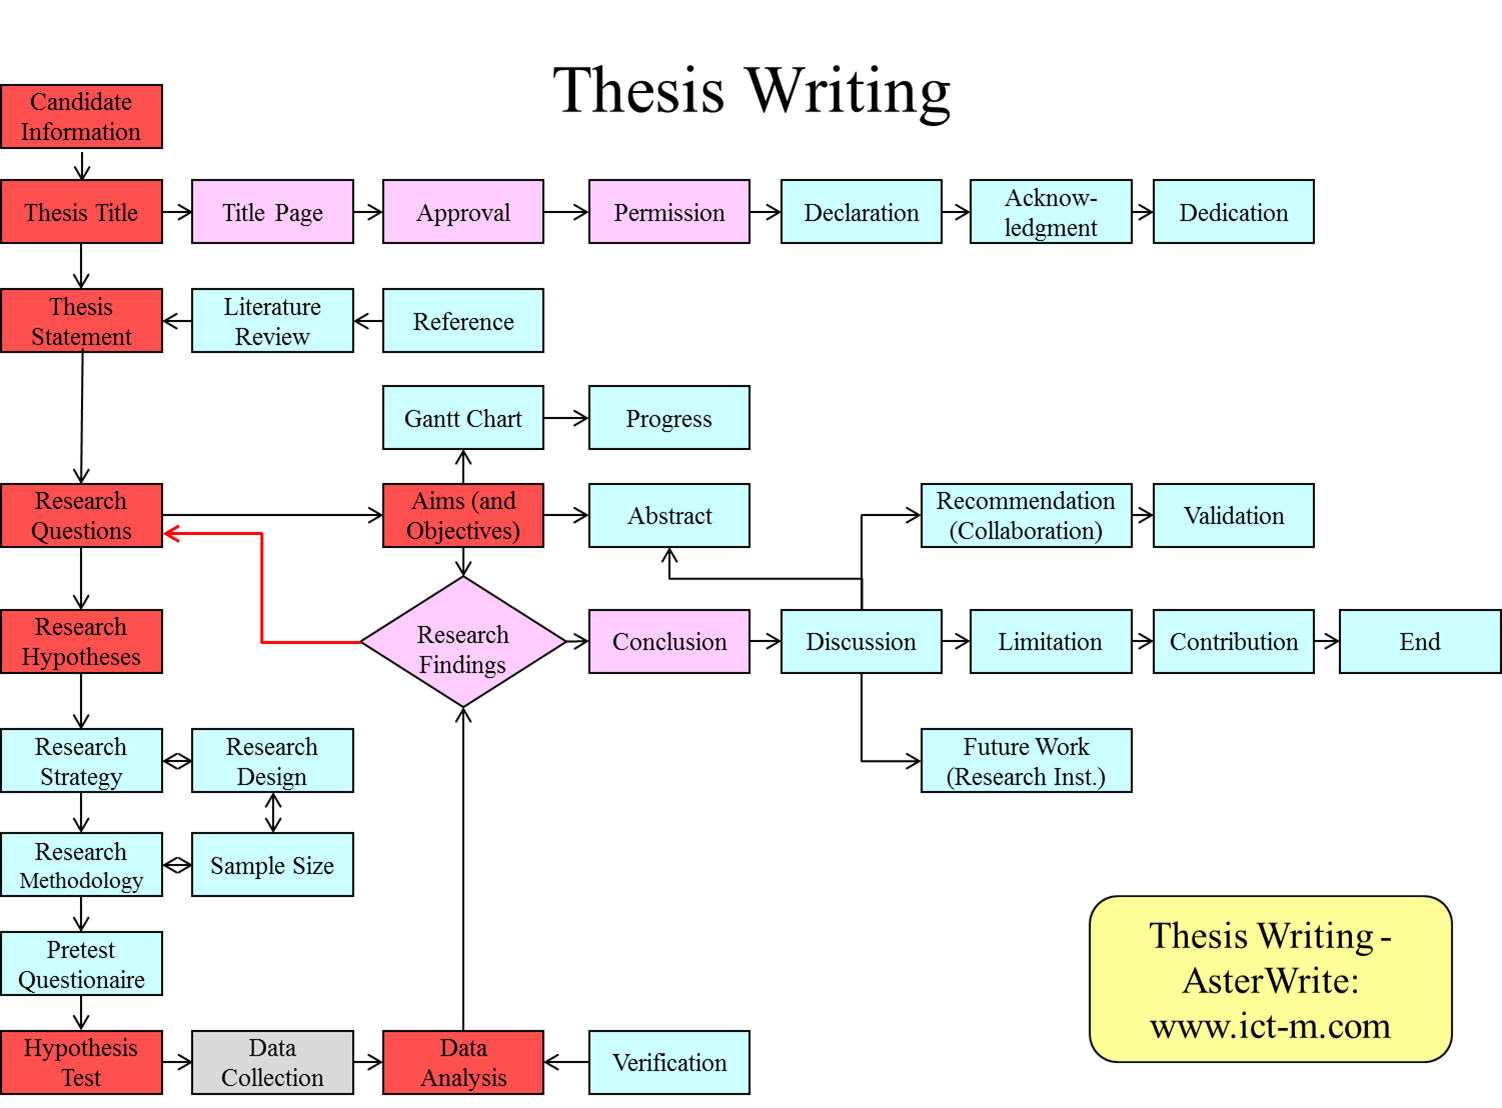 writing your doctoral thesis The successful completion of a doctorate is judged based on a written thesis outlining your research this page contains tips on writing and submitting your phd thesis.